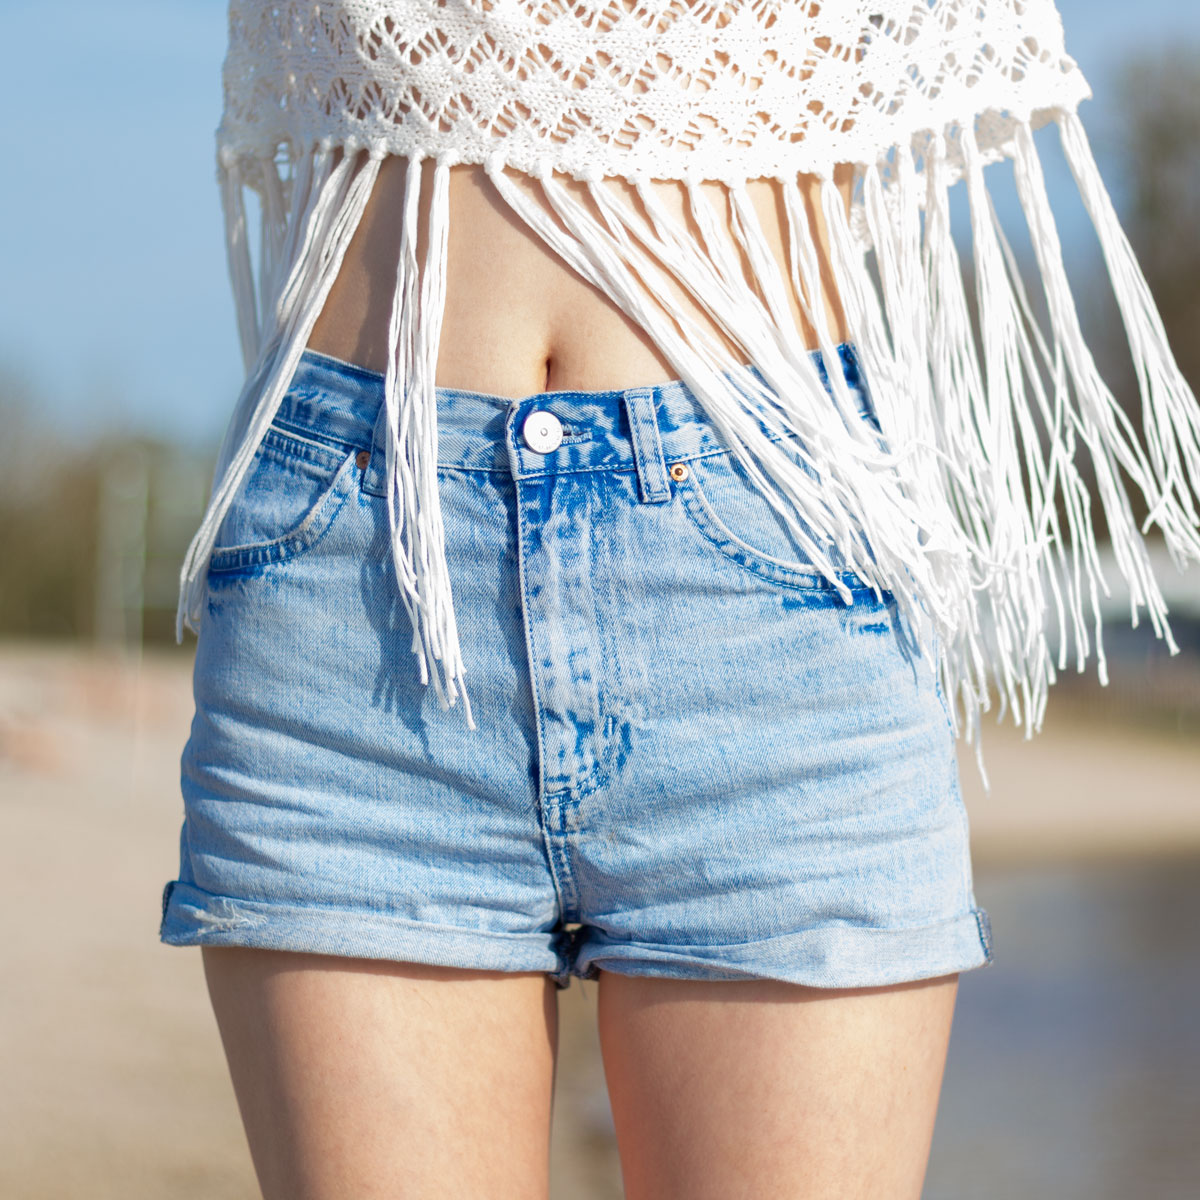 This is summer. // How I met my outfit by Dana Lohmüller